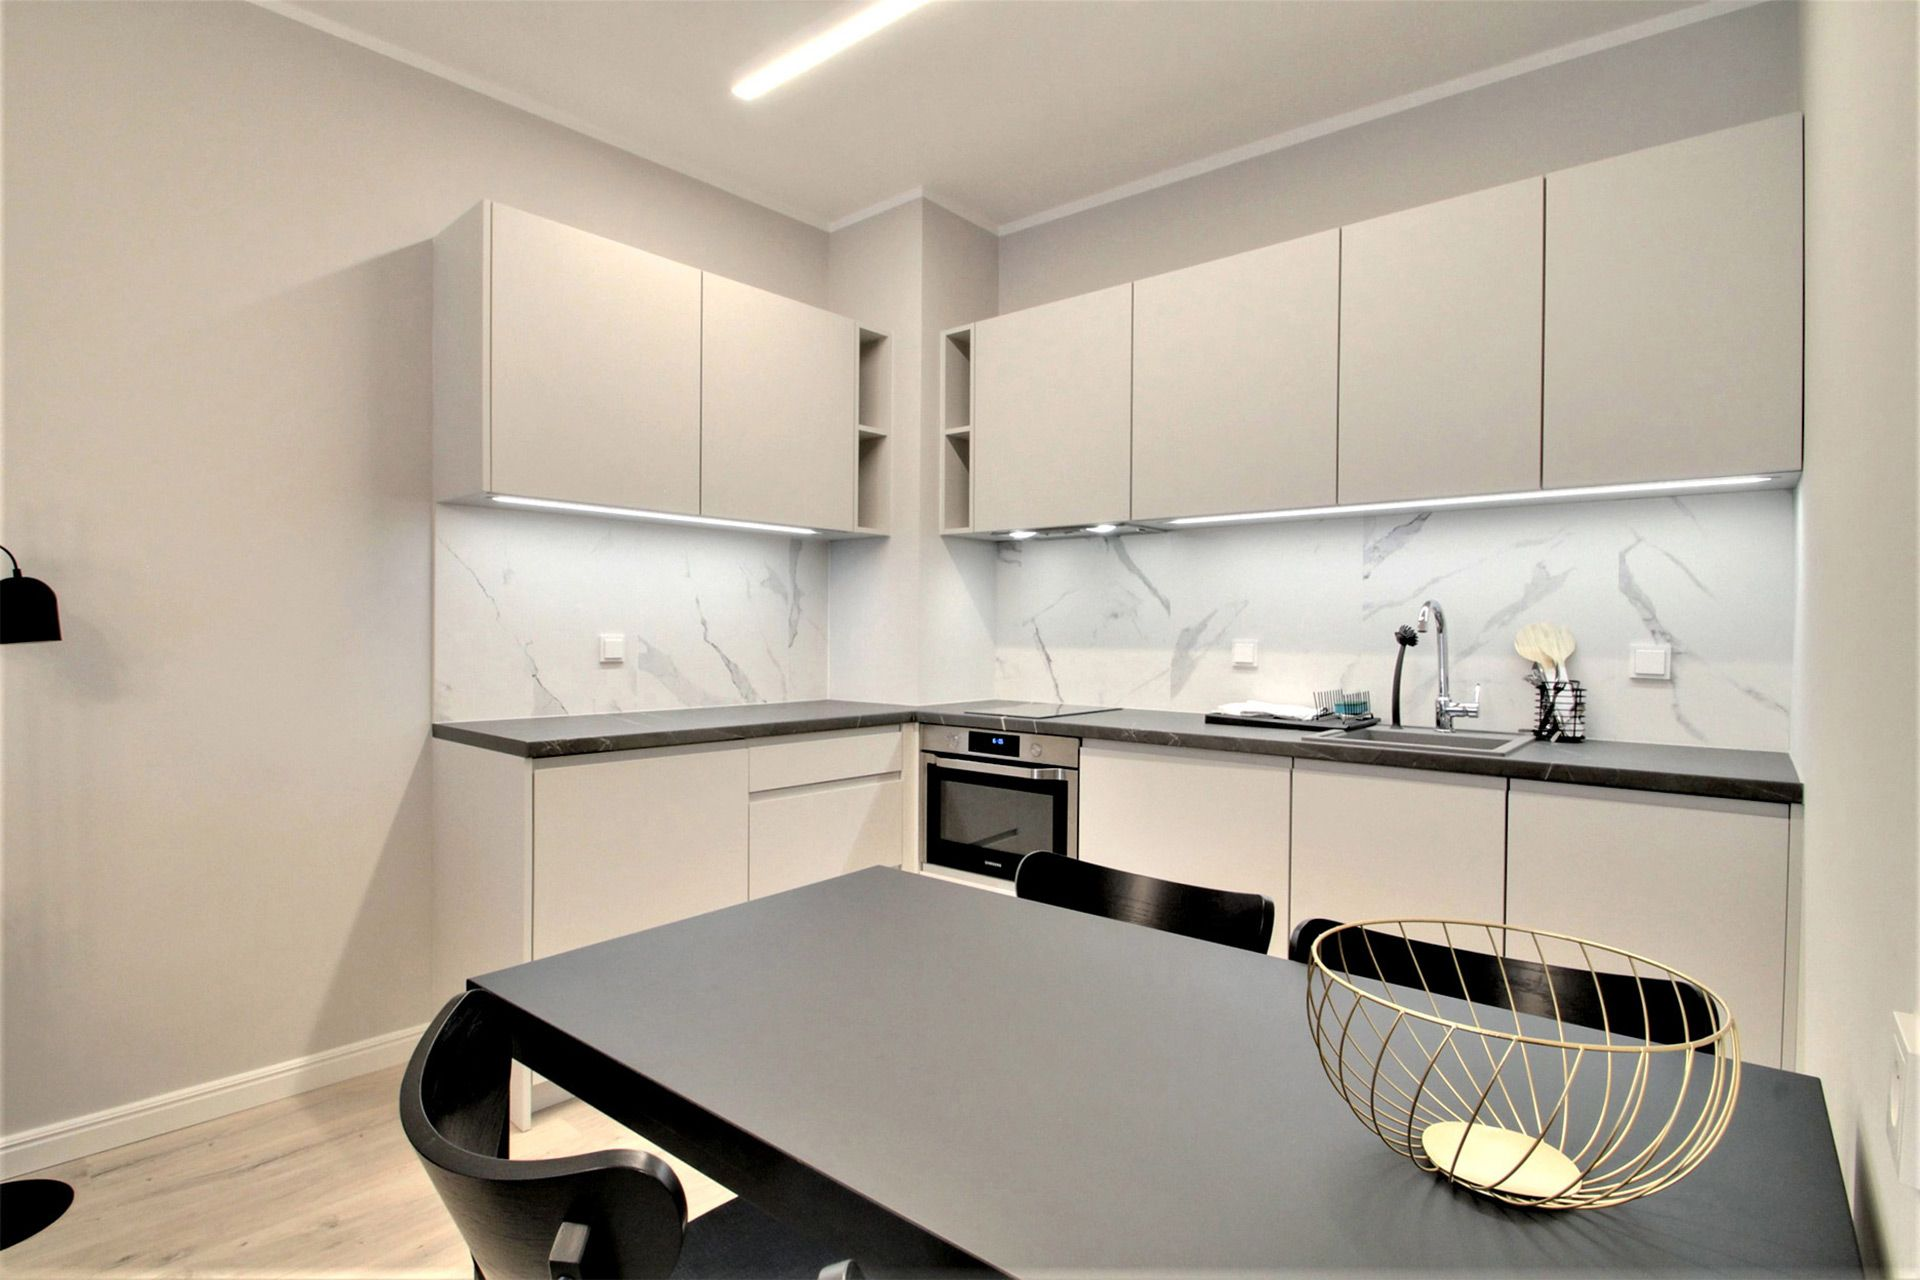 Studio - Medium apartment to rent in Warsaw UPR-A-008-2